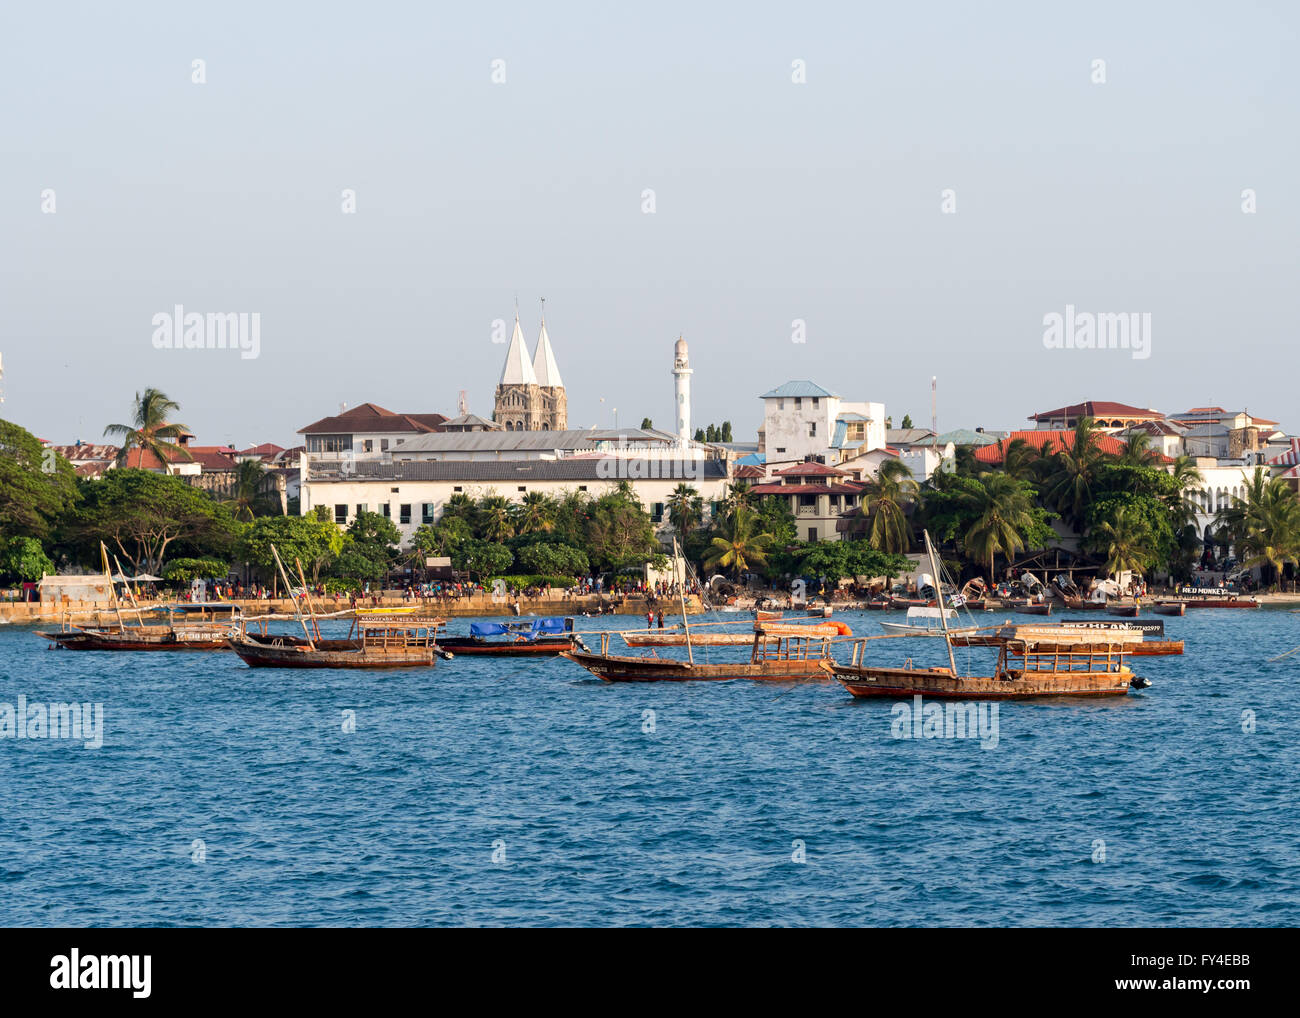 Stone Town on Zanzibar seen from the ferry from Dar es Salaam. - Stock Image